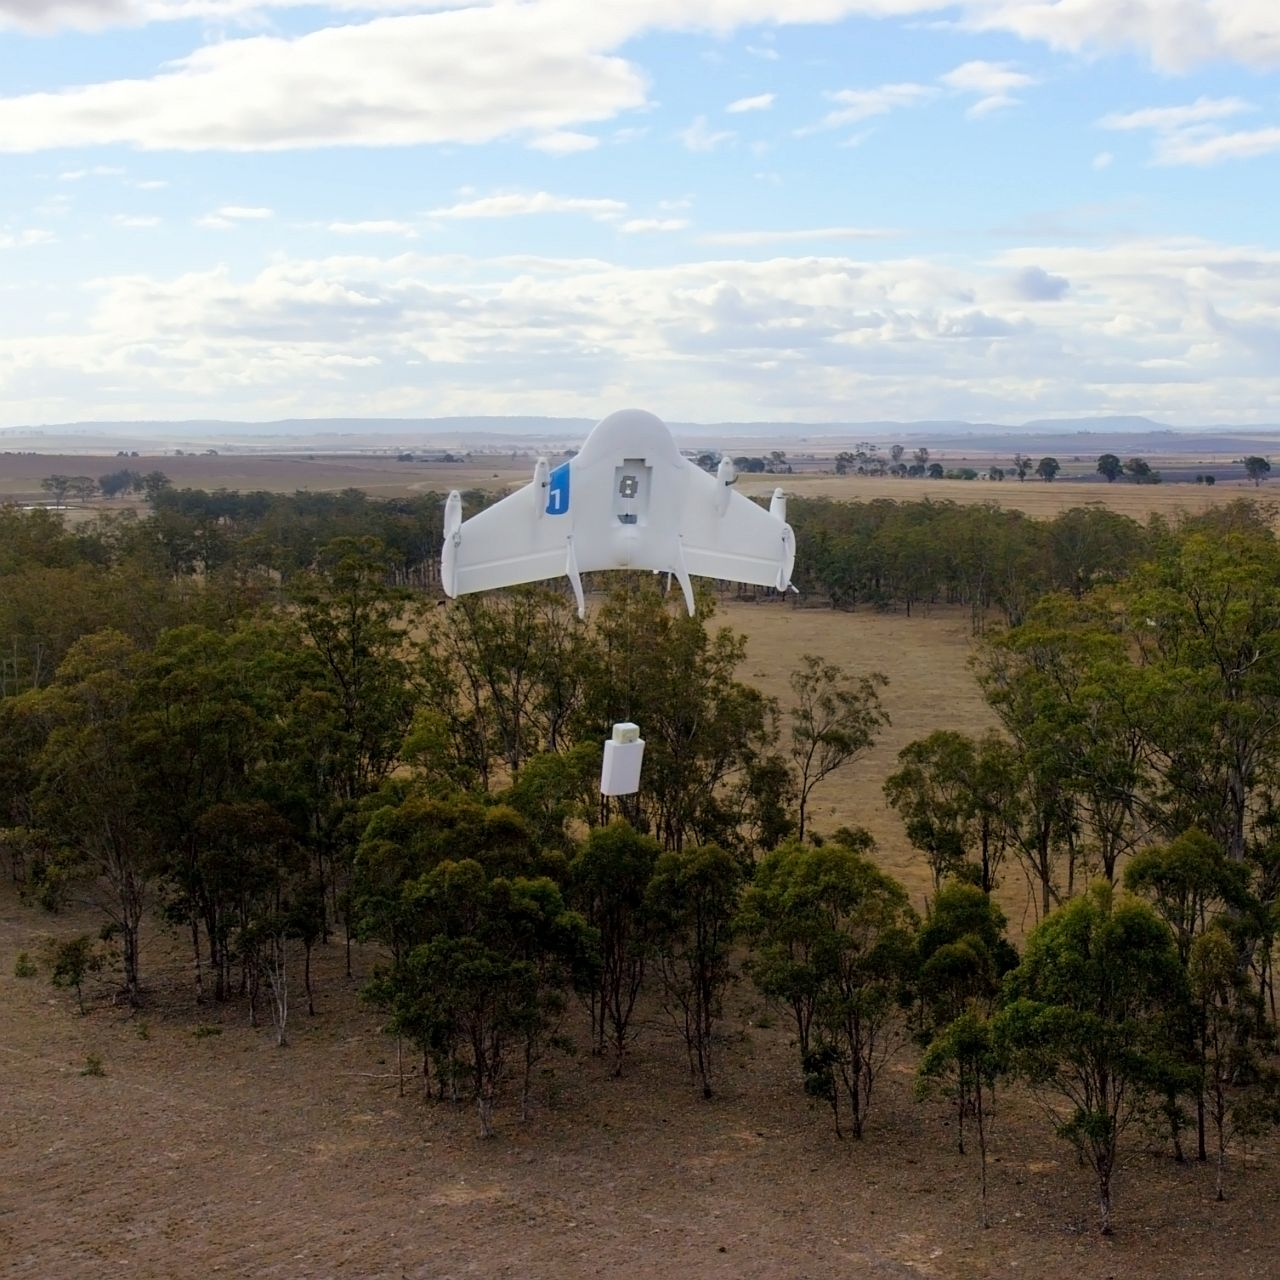 This undated image provided by Google shows a Project Wing drone vehicle during delivery. Google's secretive research laboratory is trying to build a fleet of drones designed to bypass earthbound traffic so packages can be delivered to people more quickly. The ambitious program announced Thursday, Aug. 28, 2014, escalates Google's technological arms race with rival Amazon.com Inc., which also is experimenting with self-flying vehicles to carry merchandise bought by customers of its online store. (AP Photo/Google)